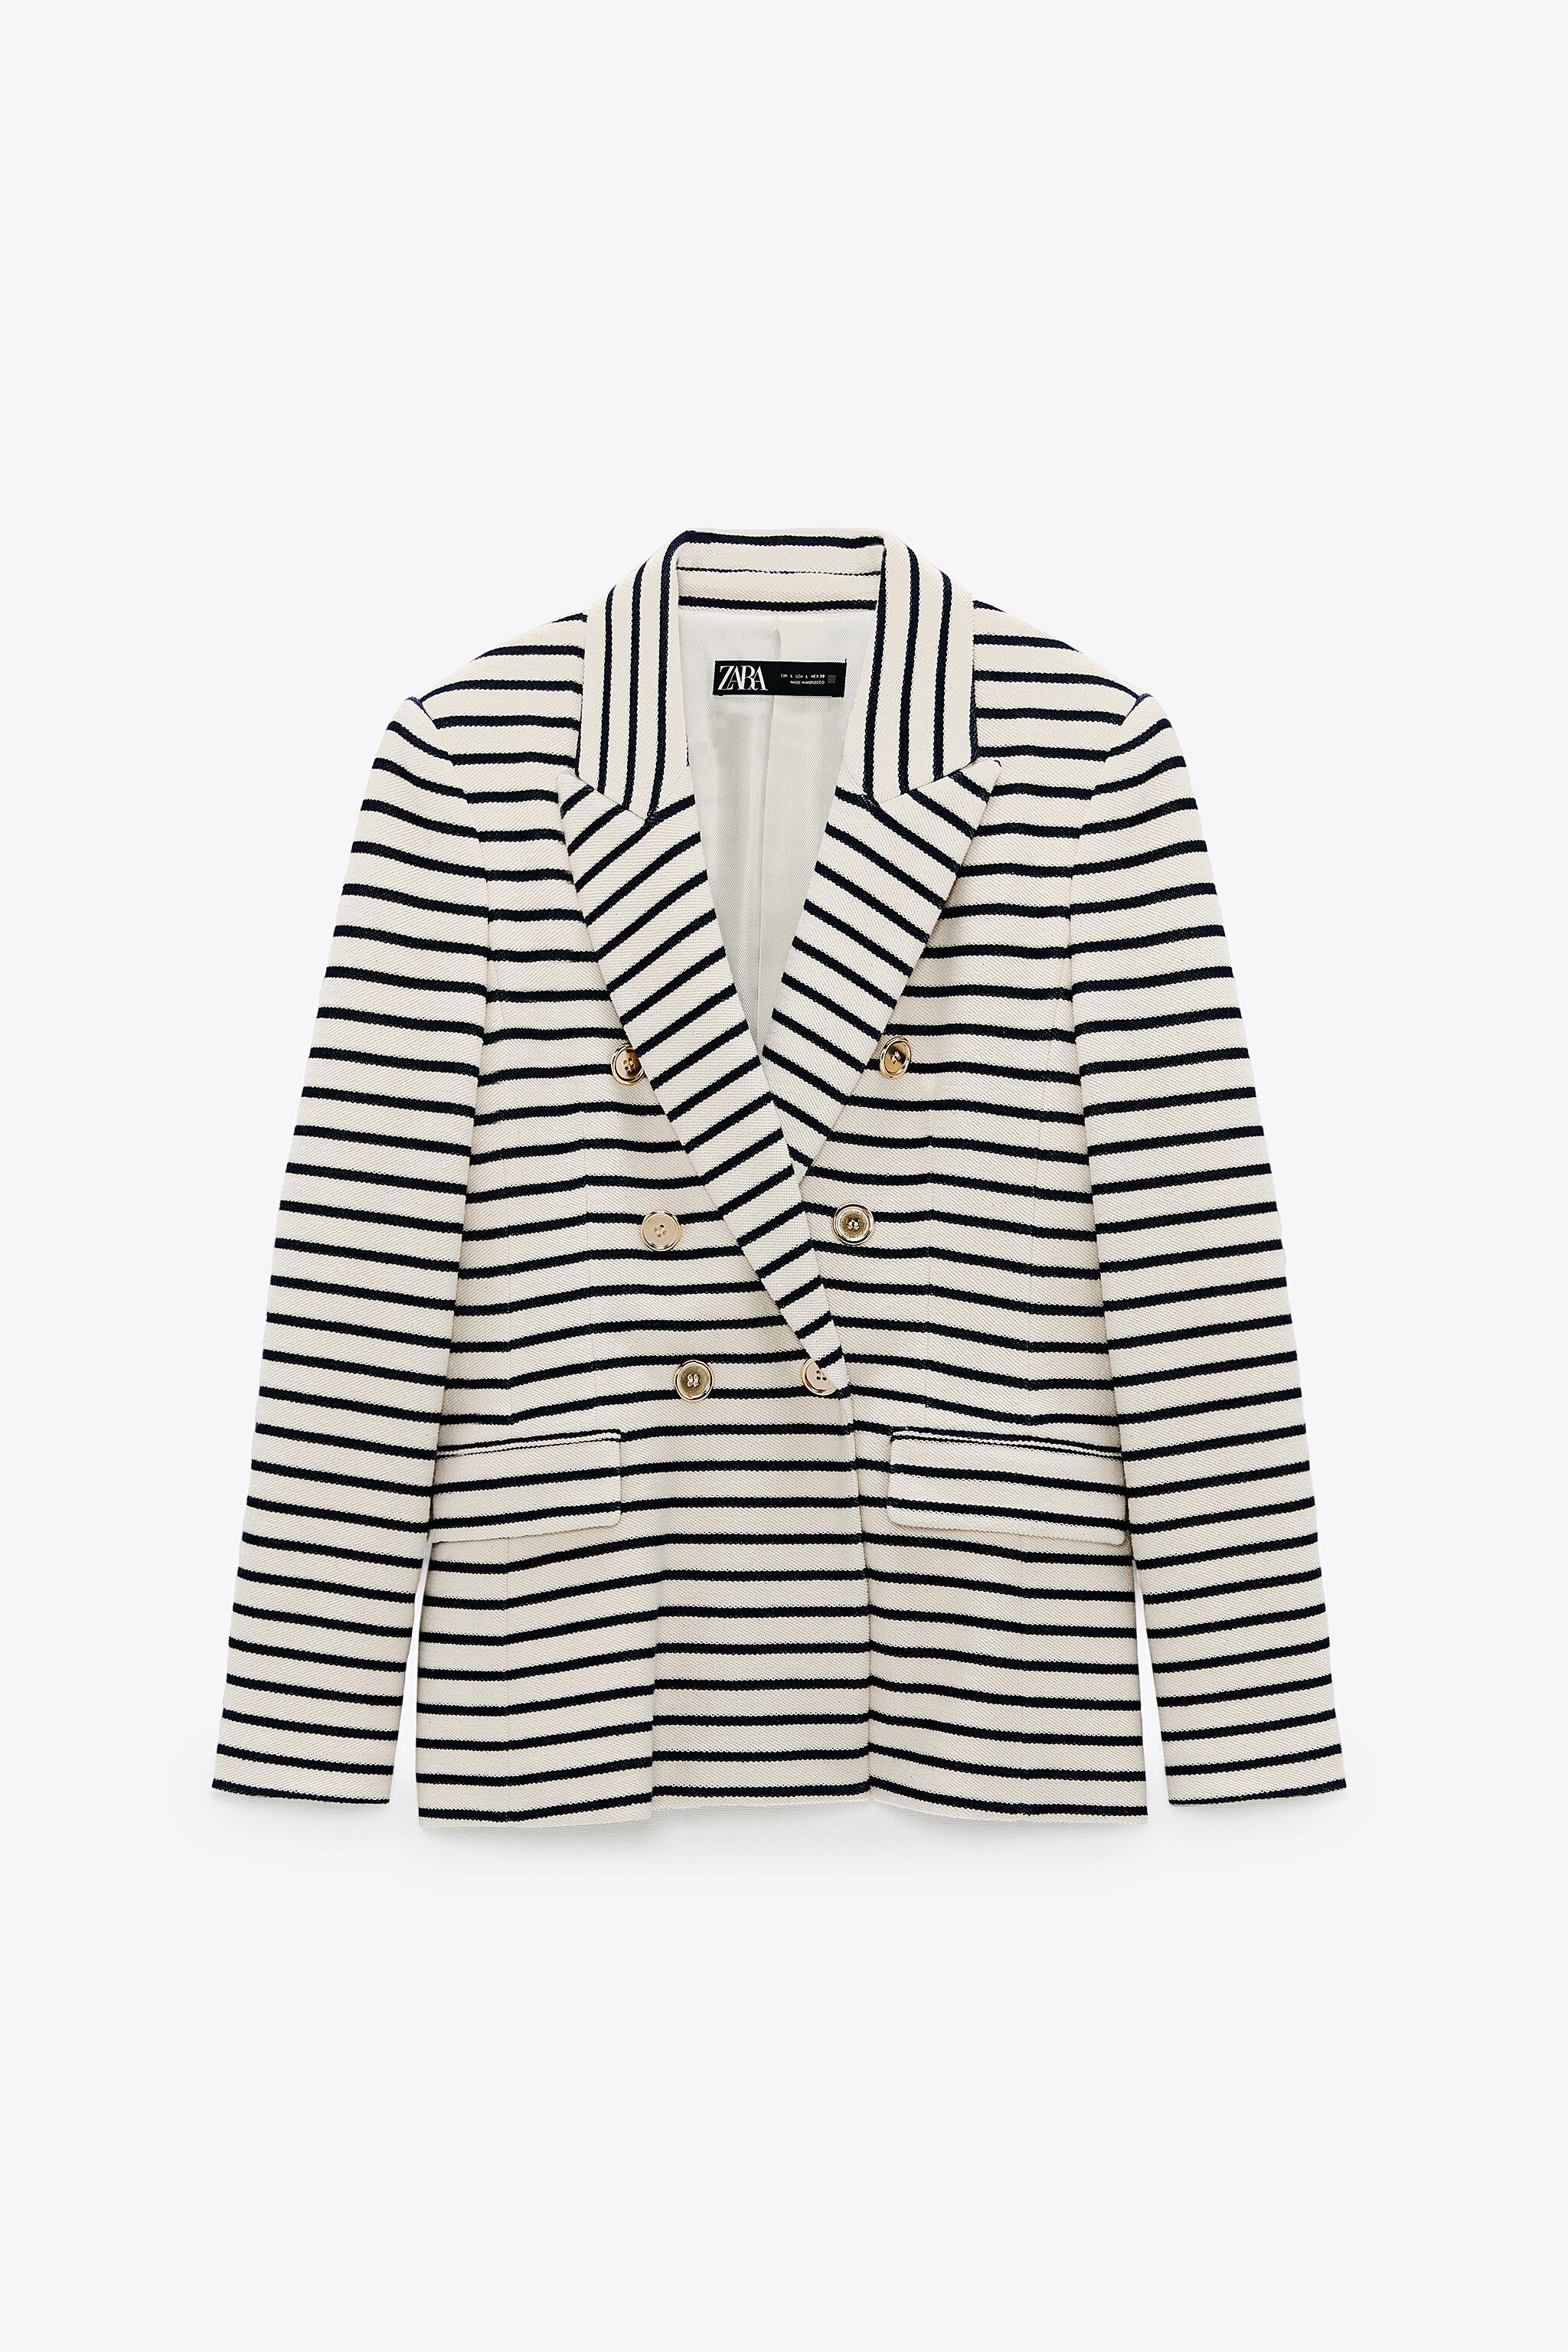 DOUBLE BREASTED STRIPED BLAZER 6